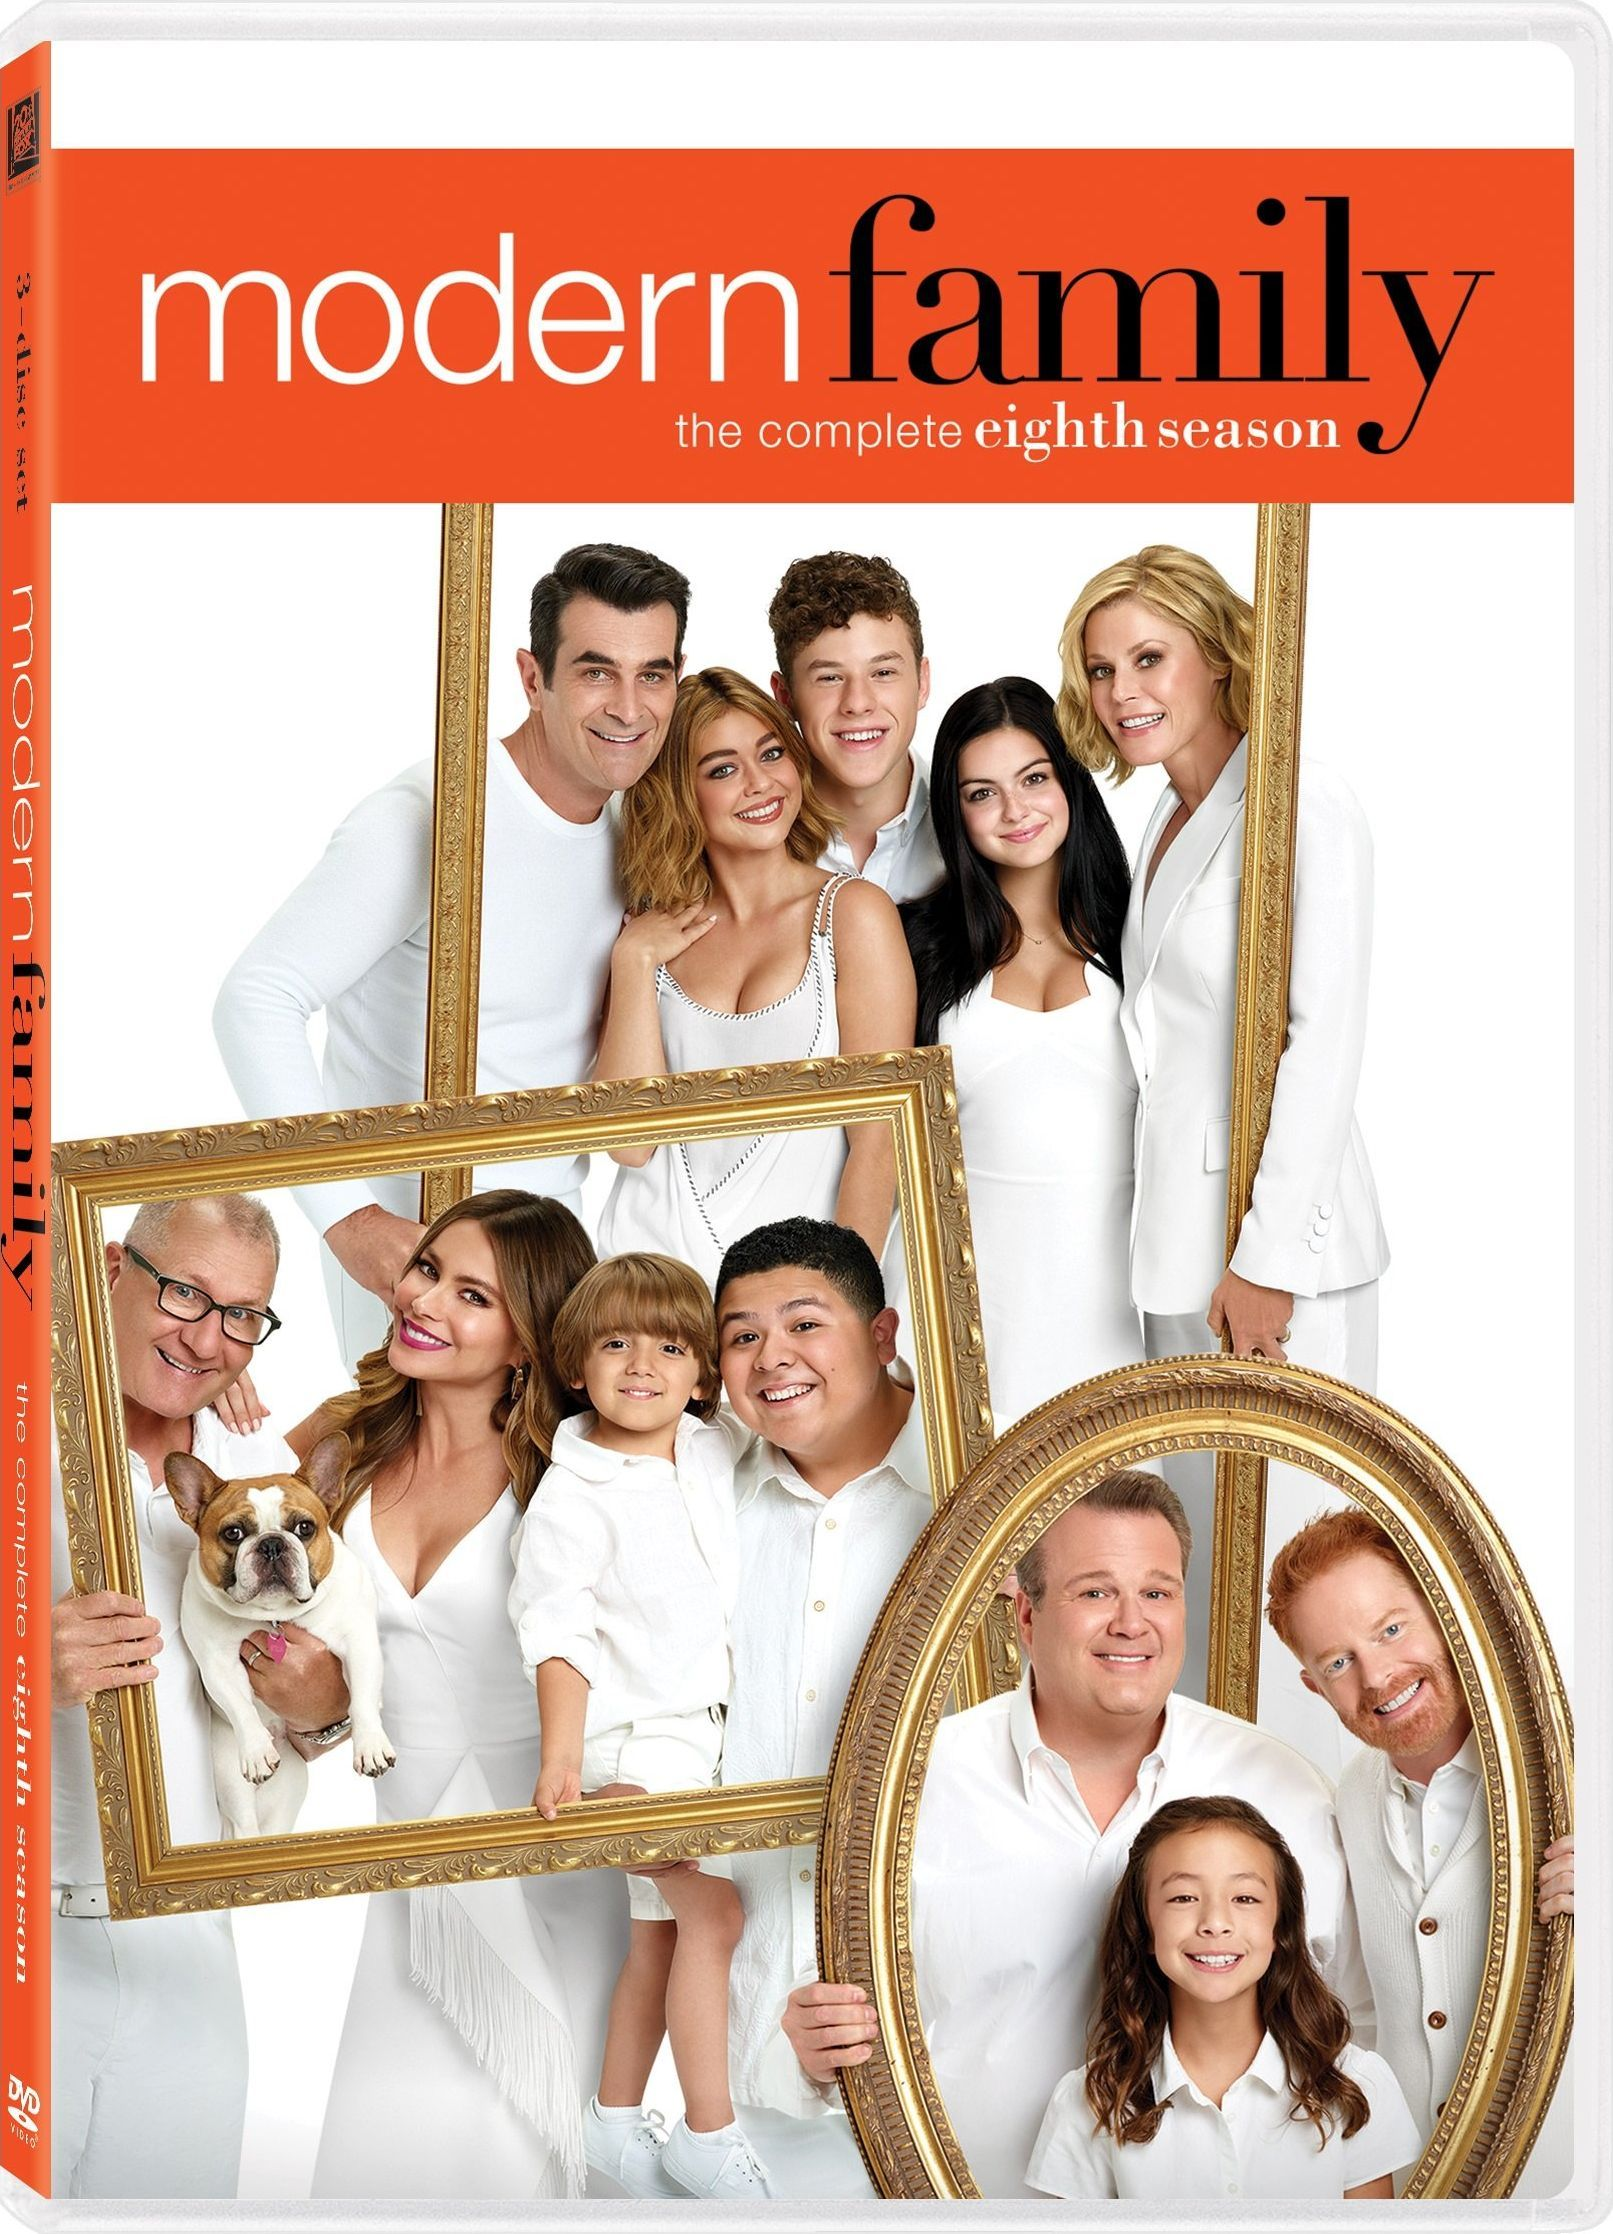 Pin by Roscoe Davis on Must See DVD Modern family